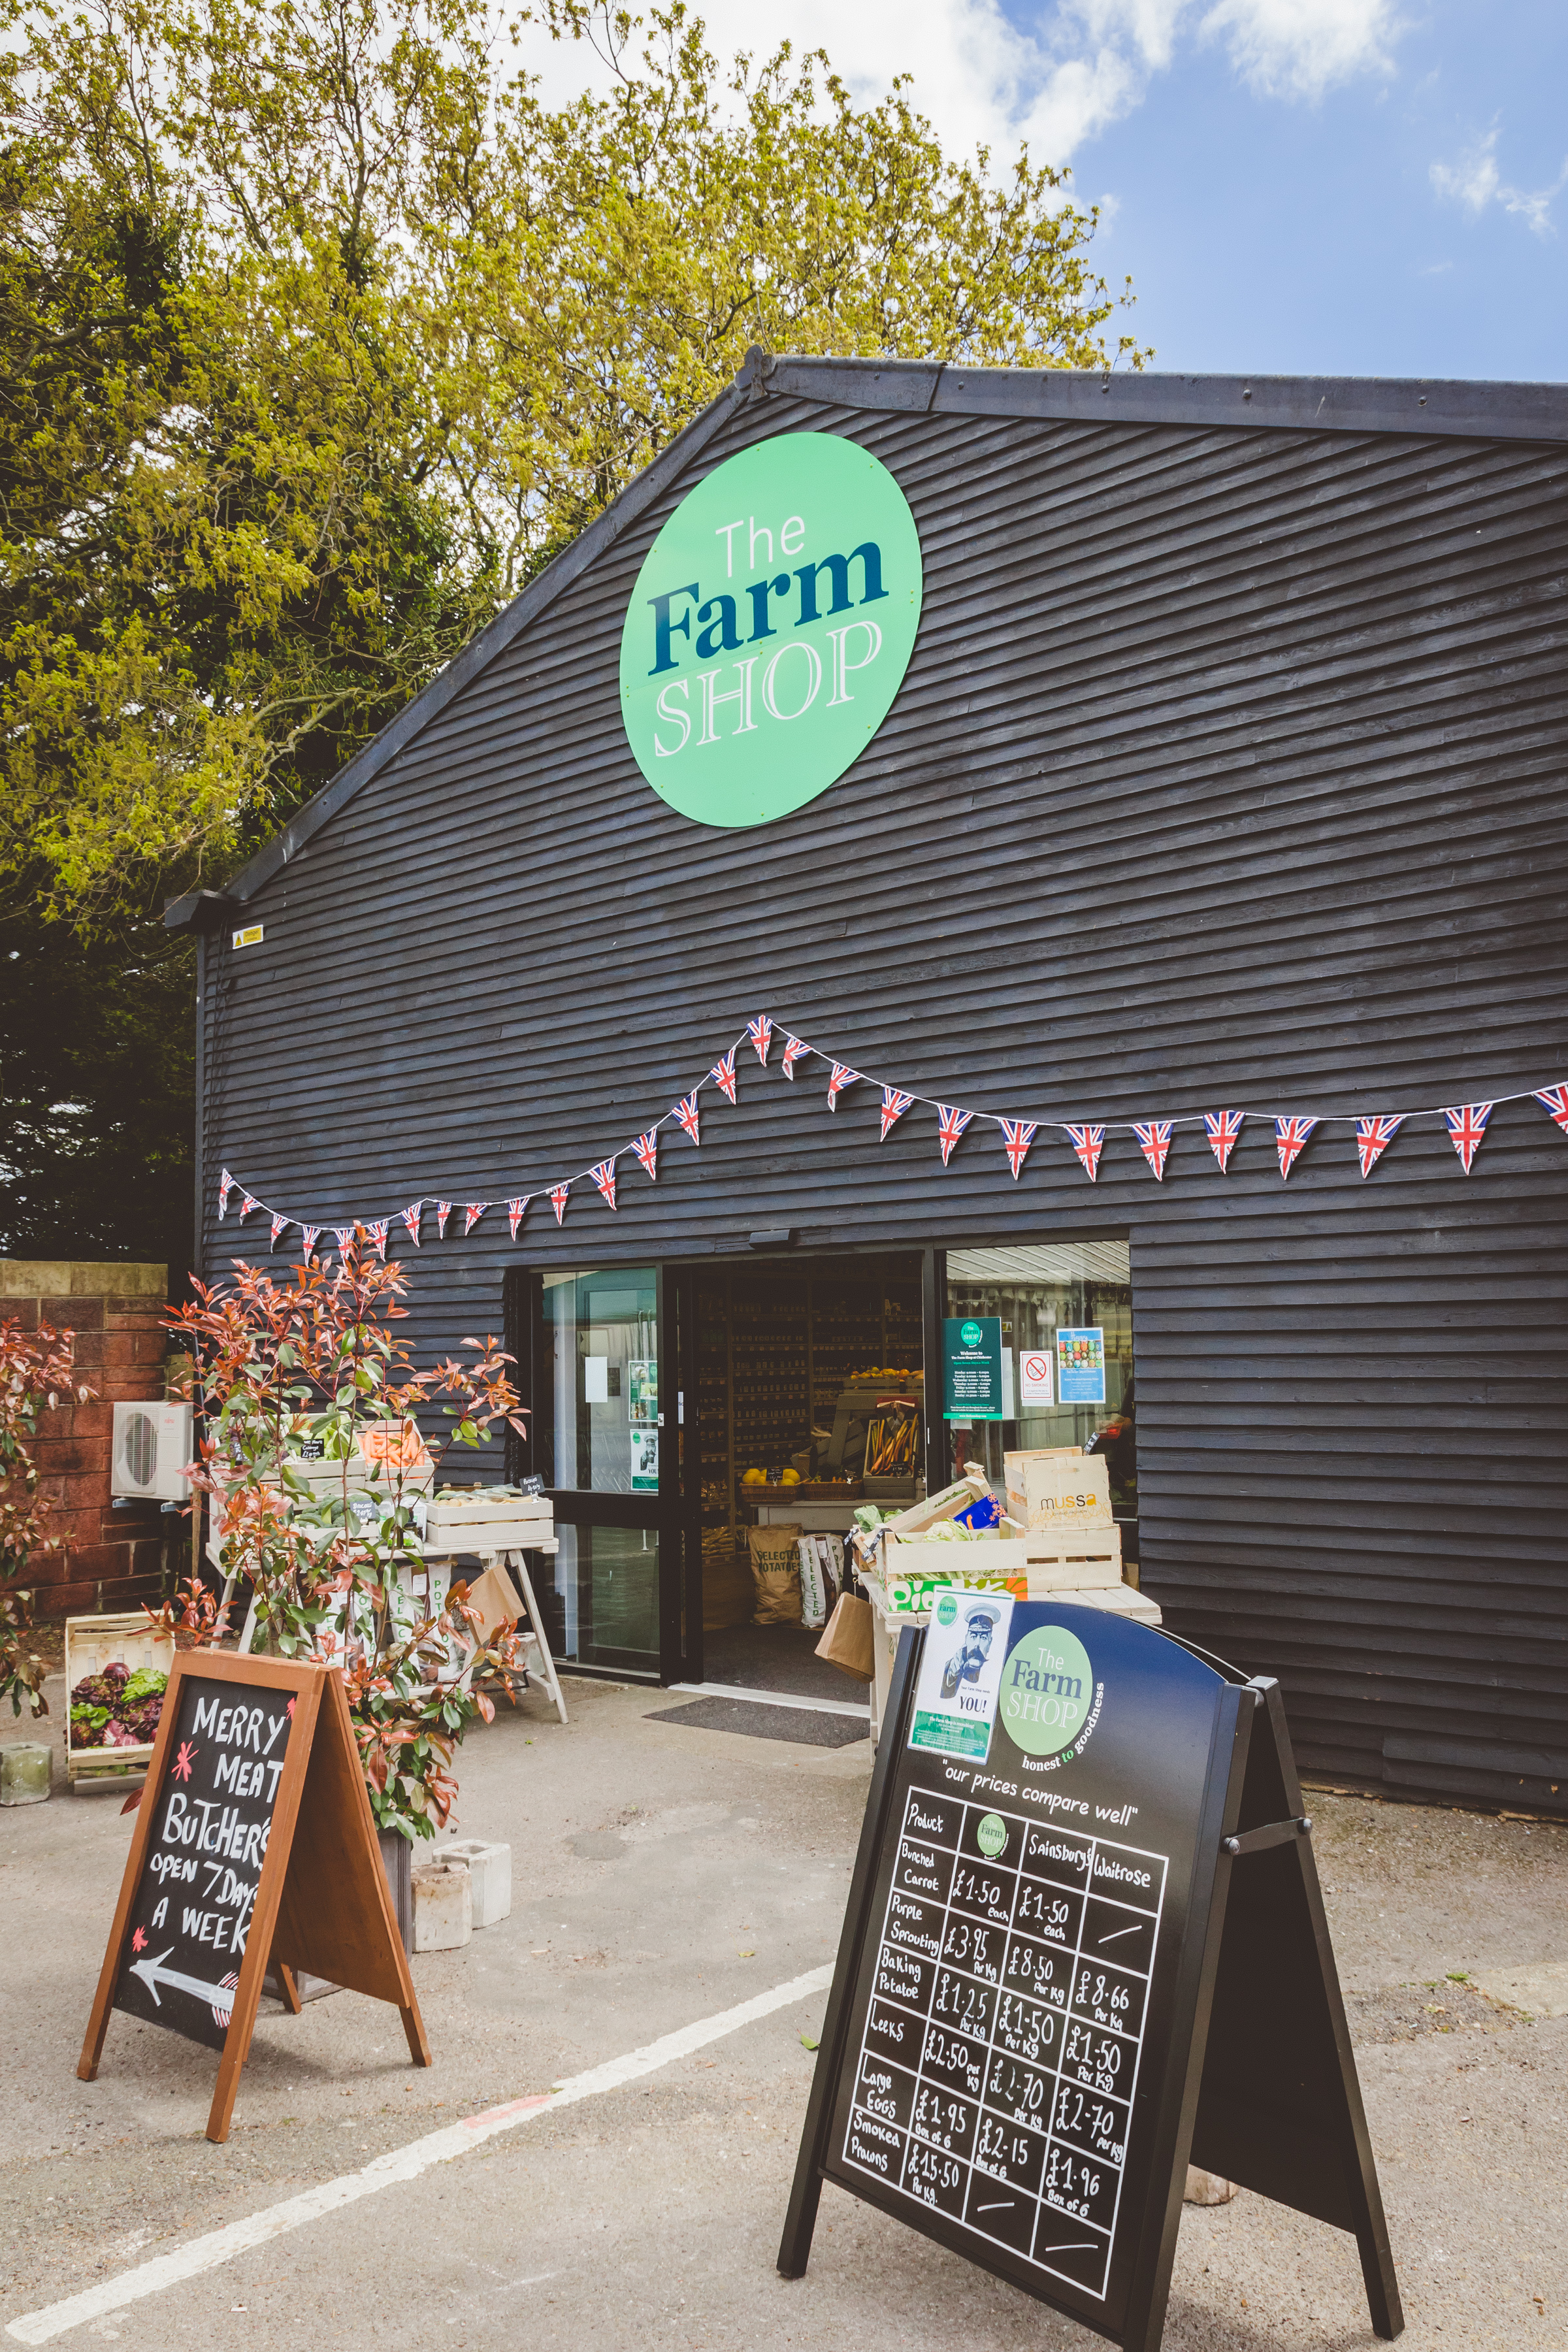 Chichester-food-farm-shop-local-produce-london-portsmouth-photographer-0012.jpg